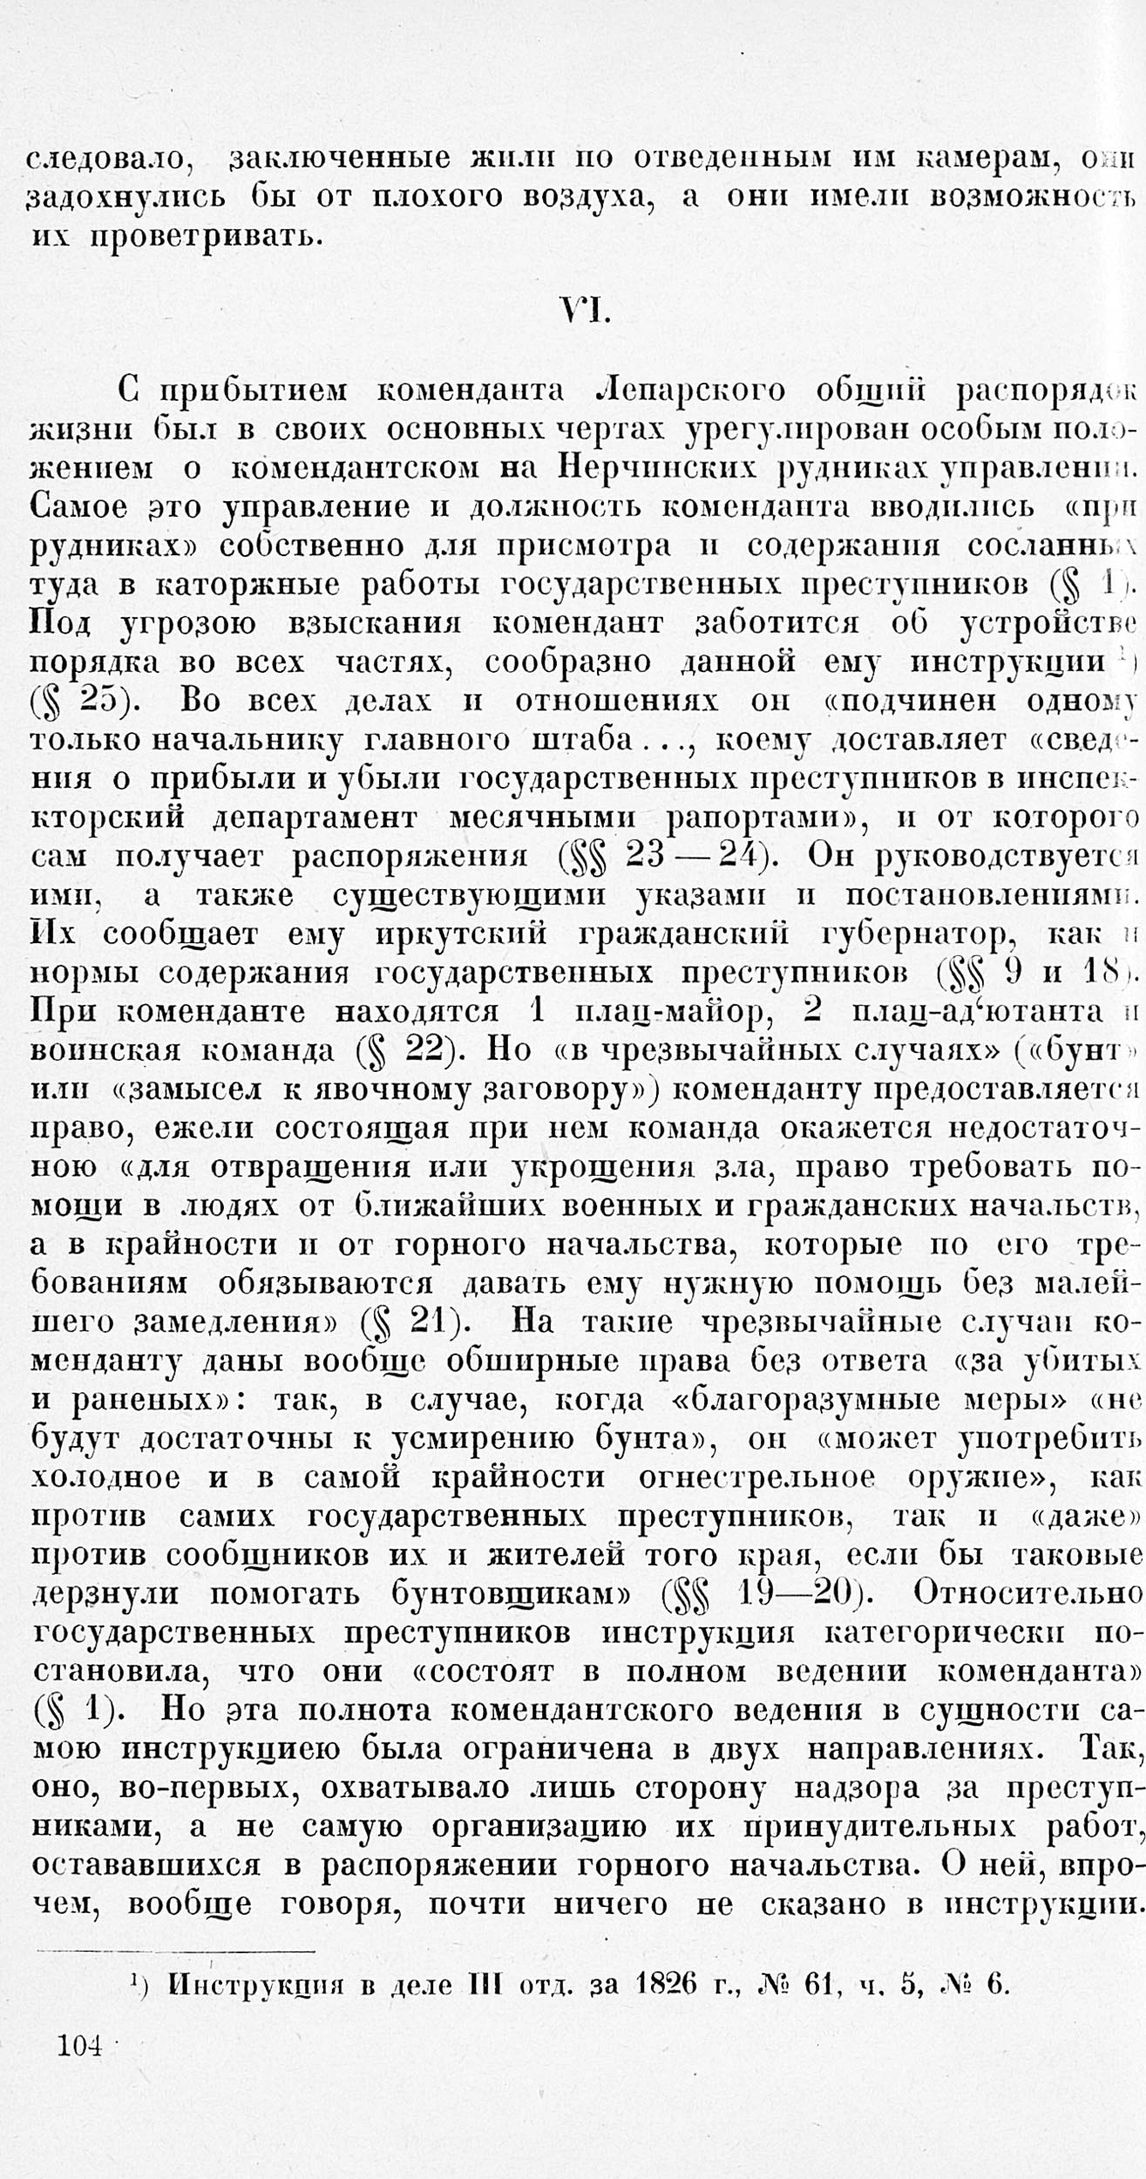 http://elib.shpl.ru/pages/649985/zooms/7